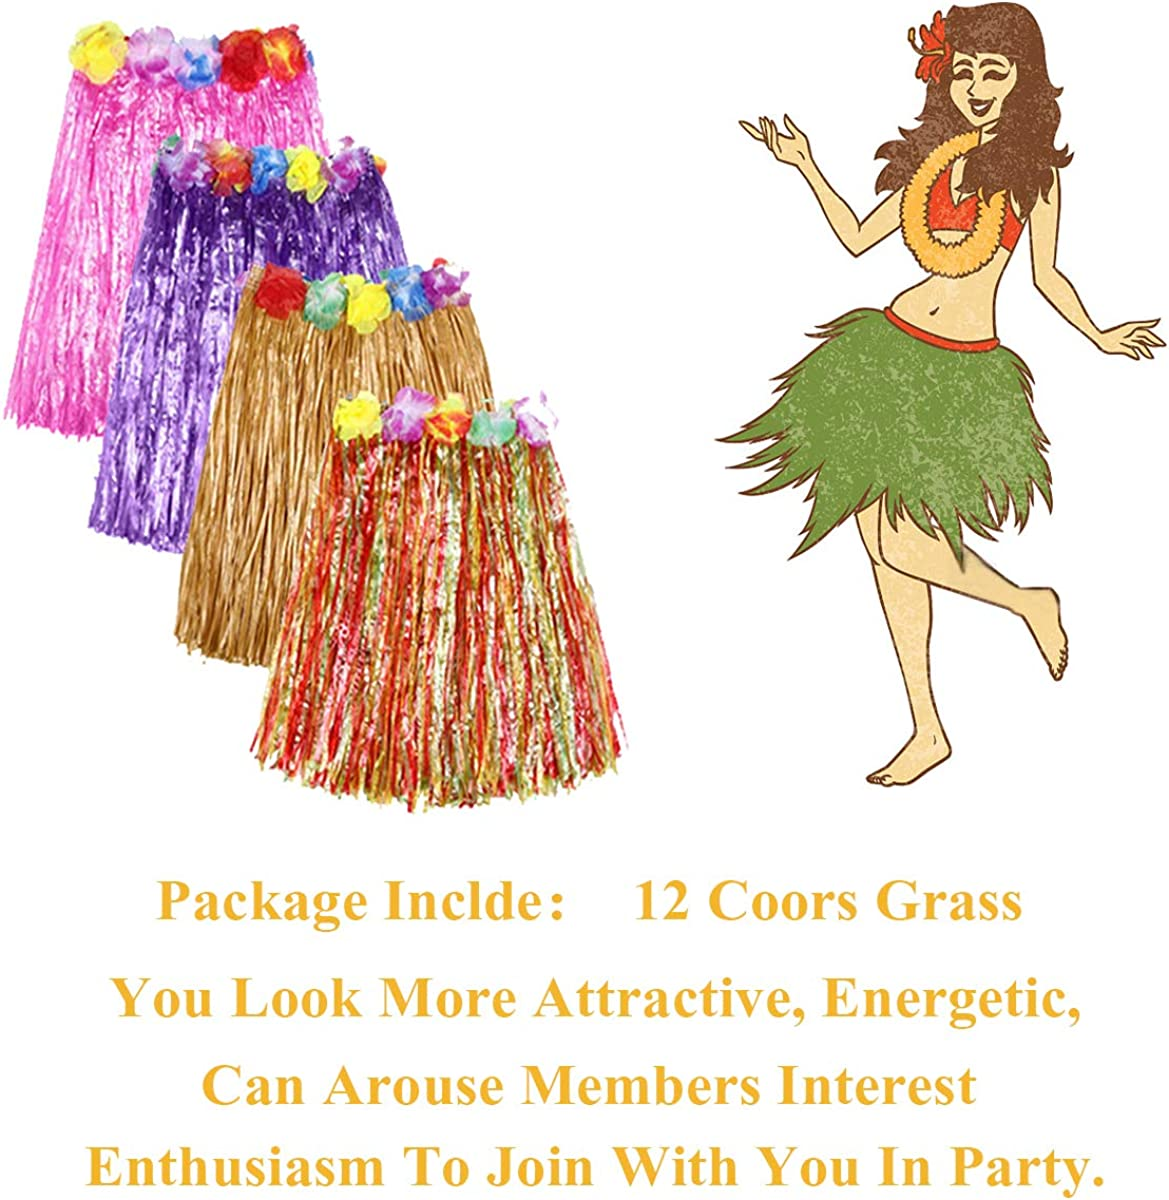 Large Birthdays Hajoyful Grass Skirt Hawaiian Luau Hula Skirts Party Decorations Favors Supplies Multicolor Grass Skirts for Adult Elastic Hibiscus Flowers Tropical Hula Skirt for Party Multicolored Celebration 60CM 12 Pack